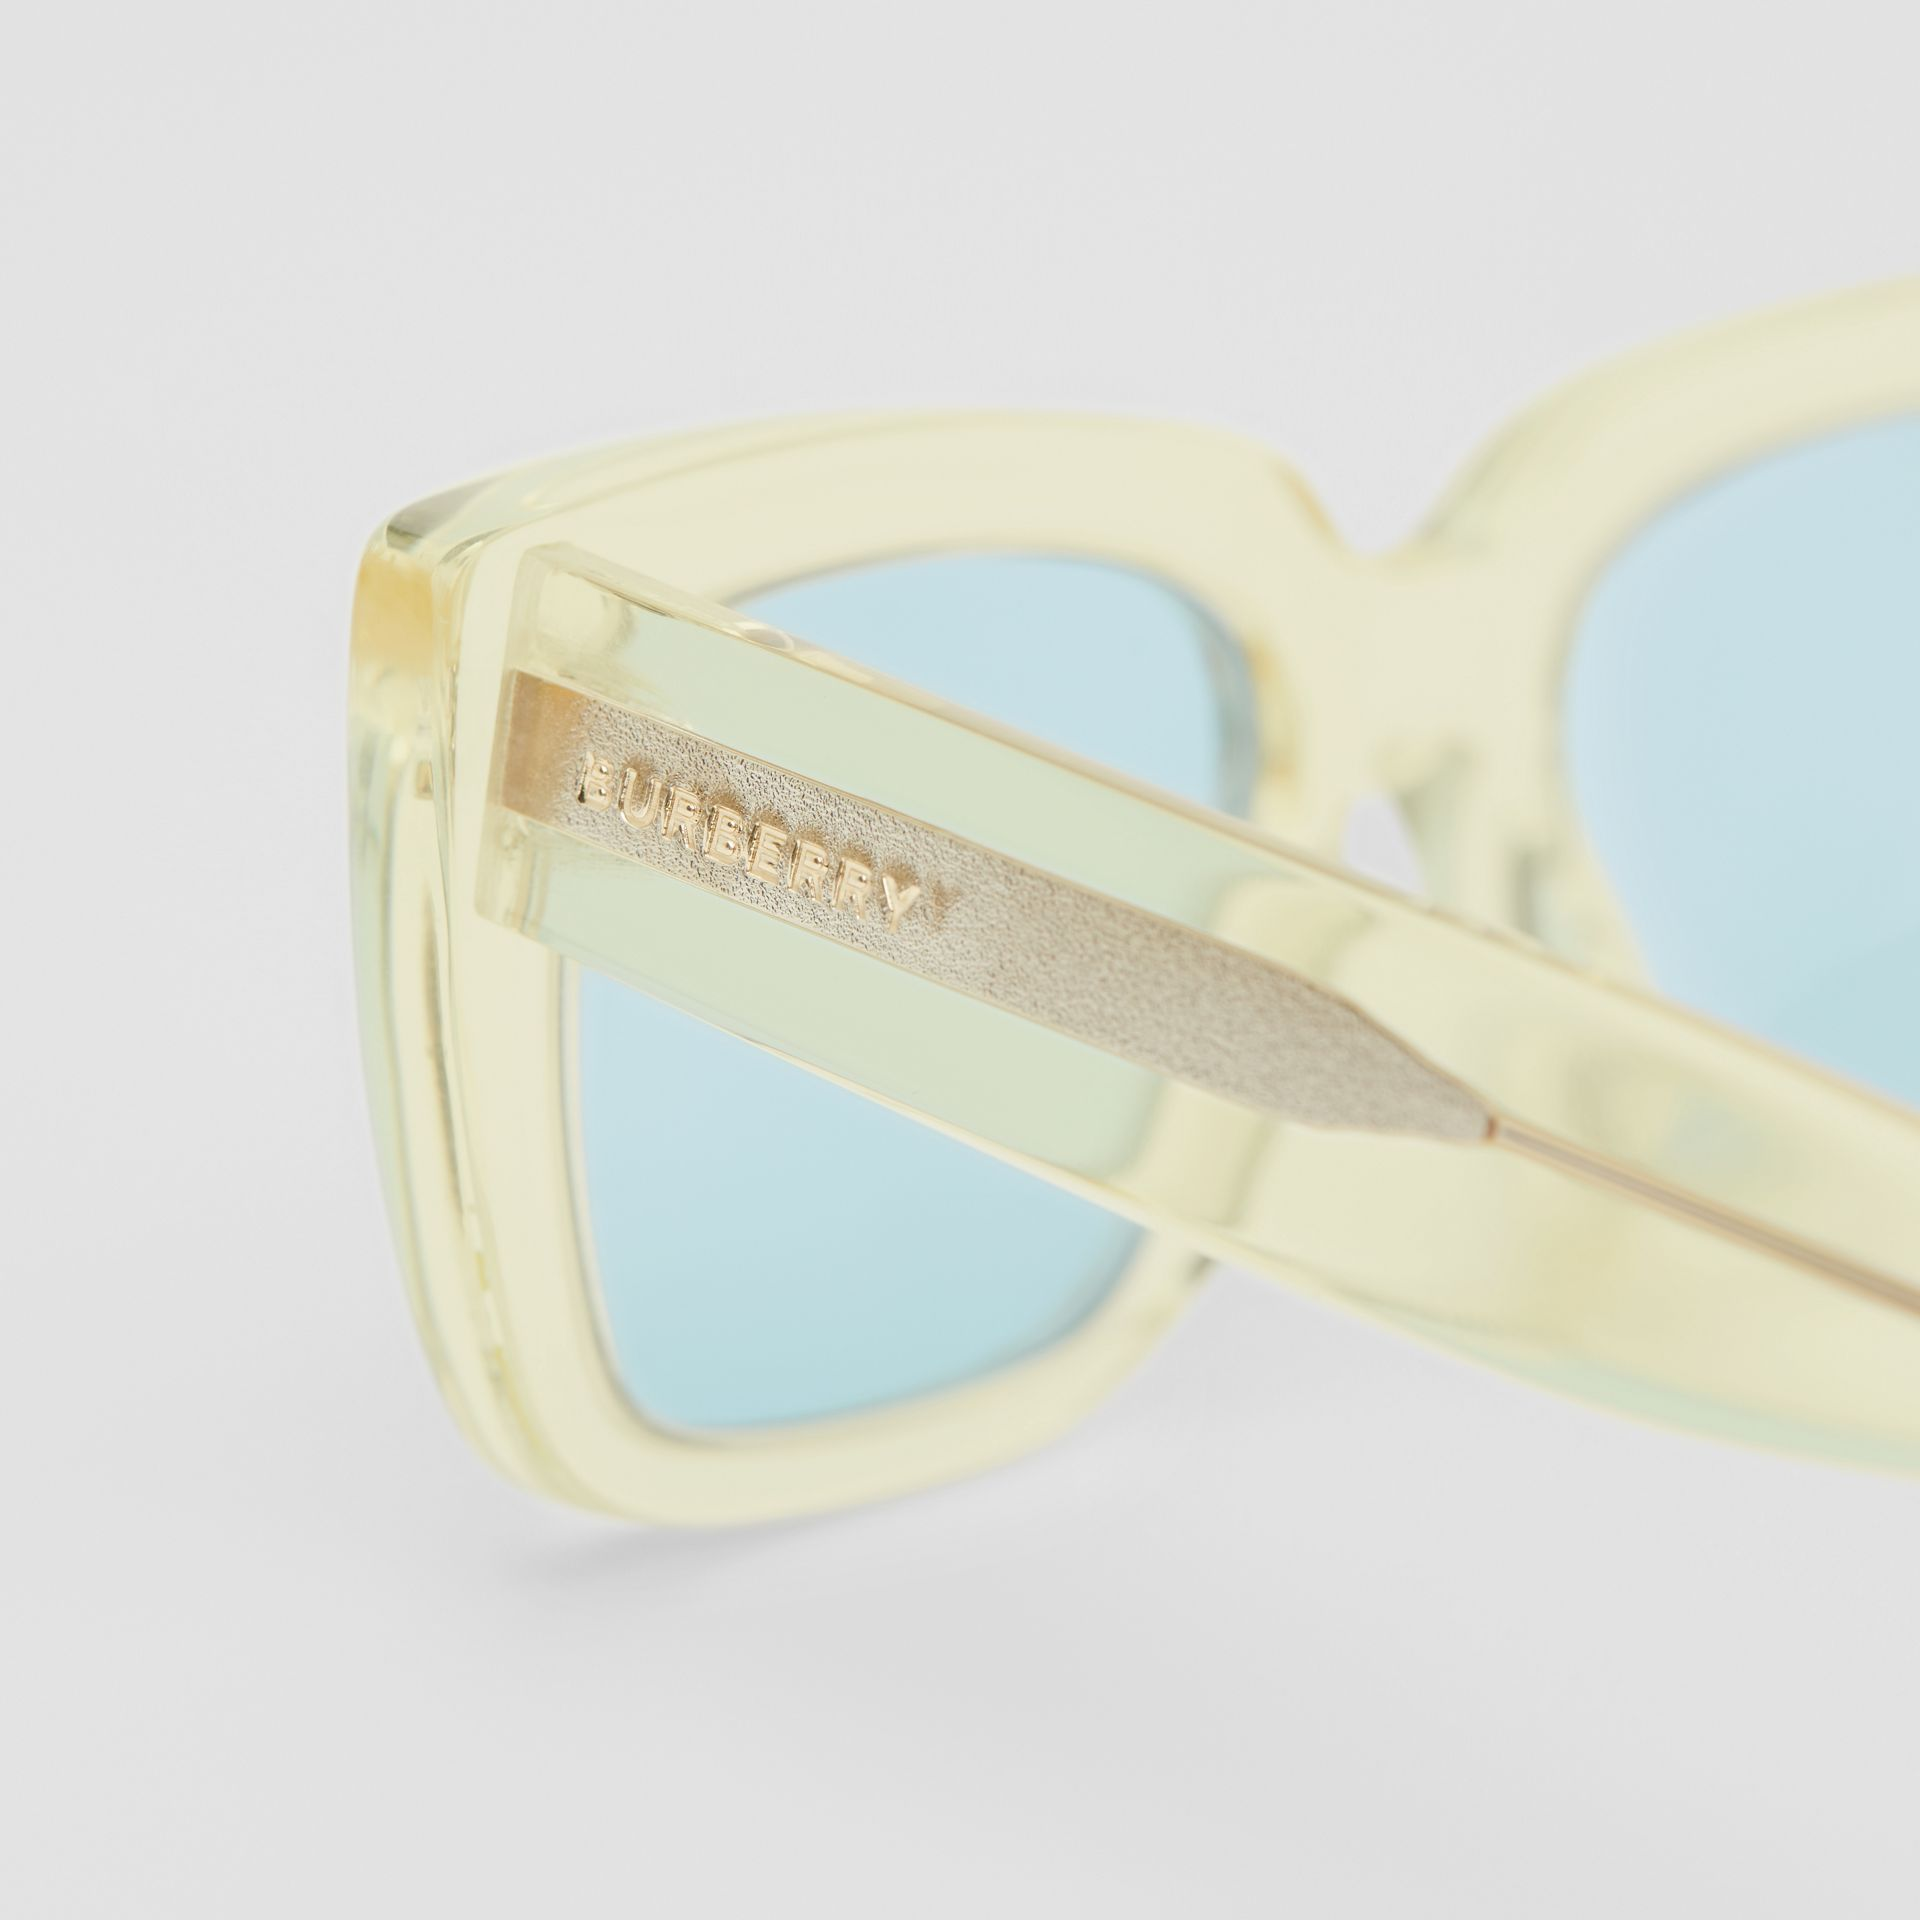 Bio-acetate Rectangular Frame Sunglasses in Pale Yellow | Burberry Australia - gallery image 1